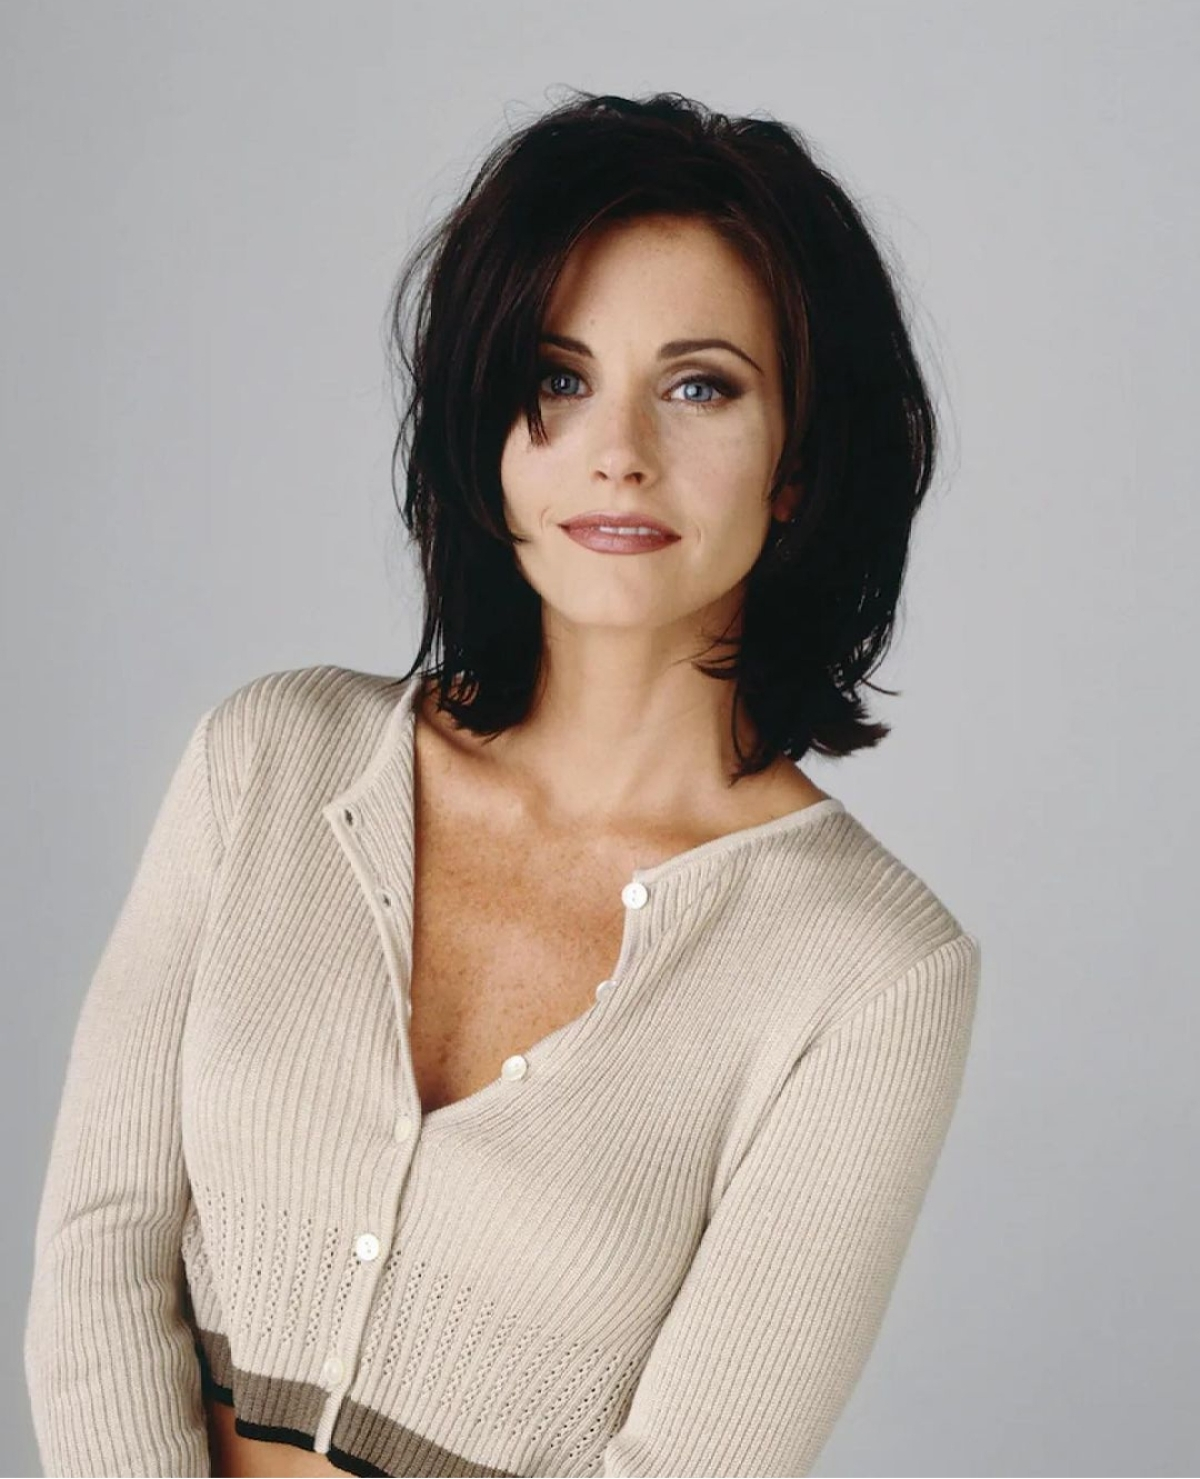 Monica played by Courteney Cox